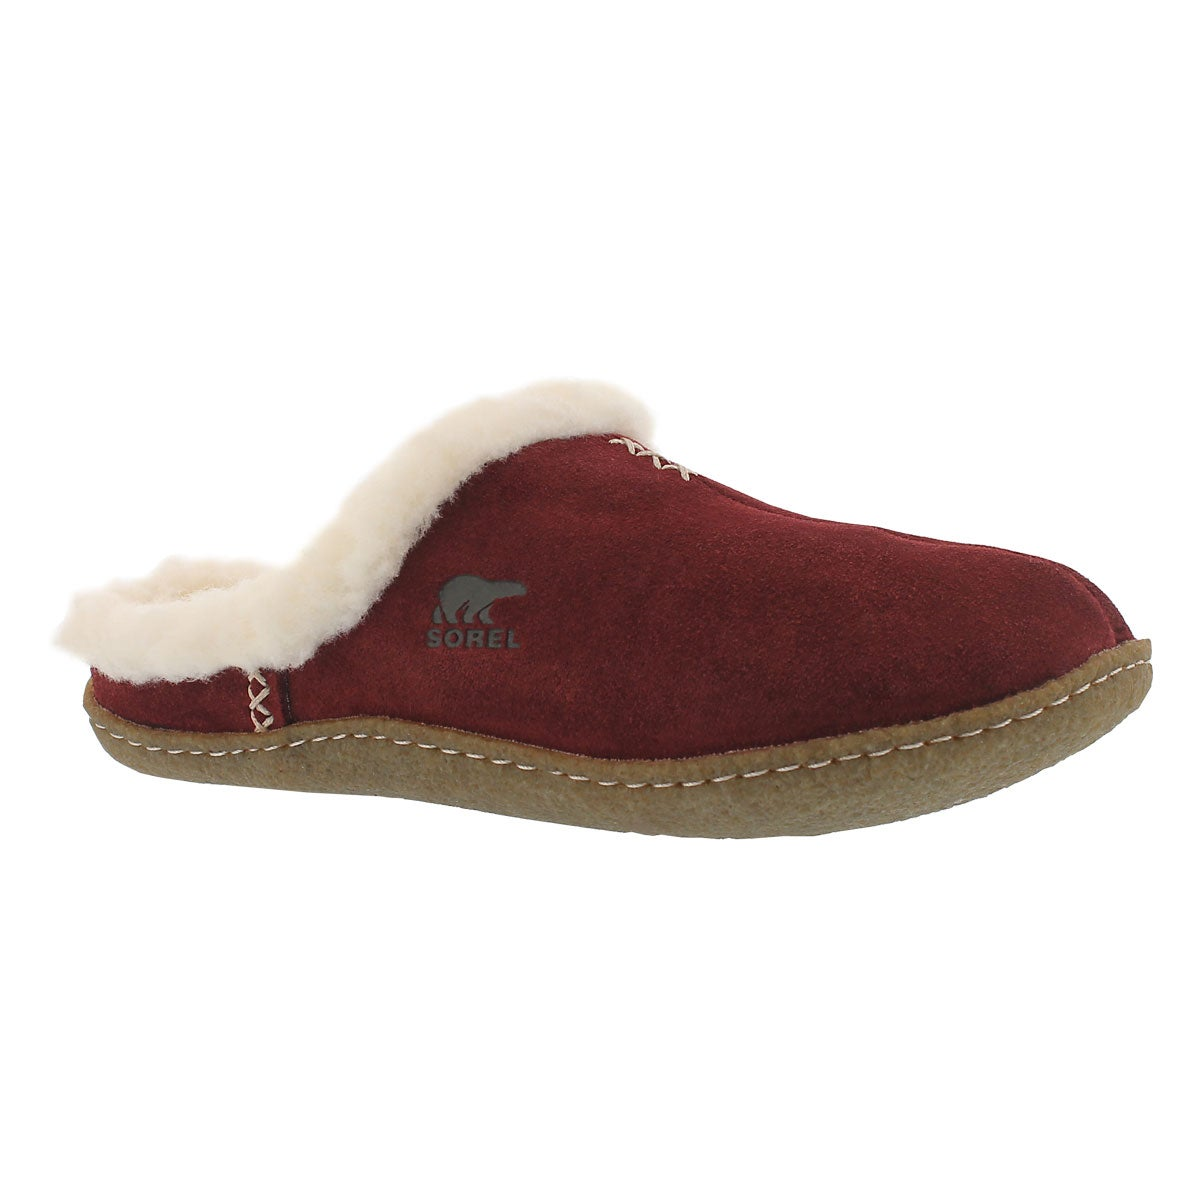 Lds Nakiska Slide red suede slipper